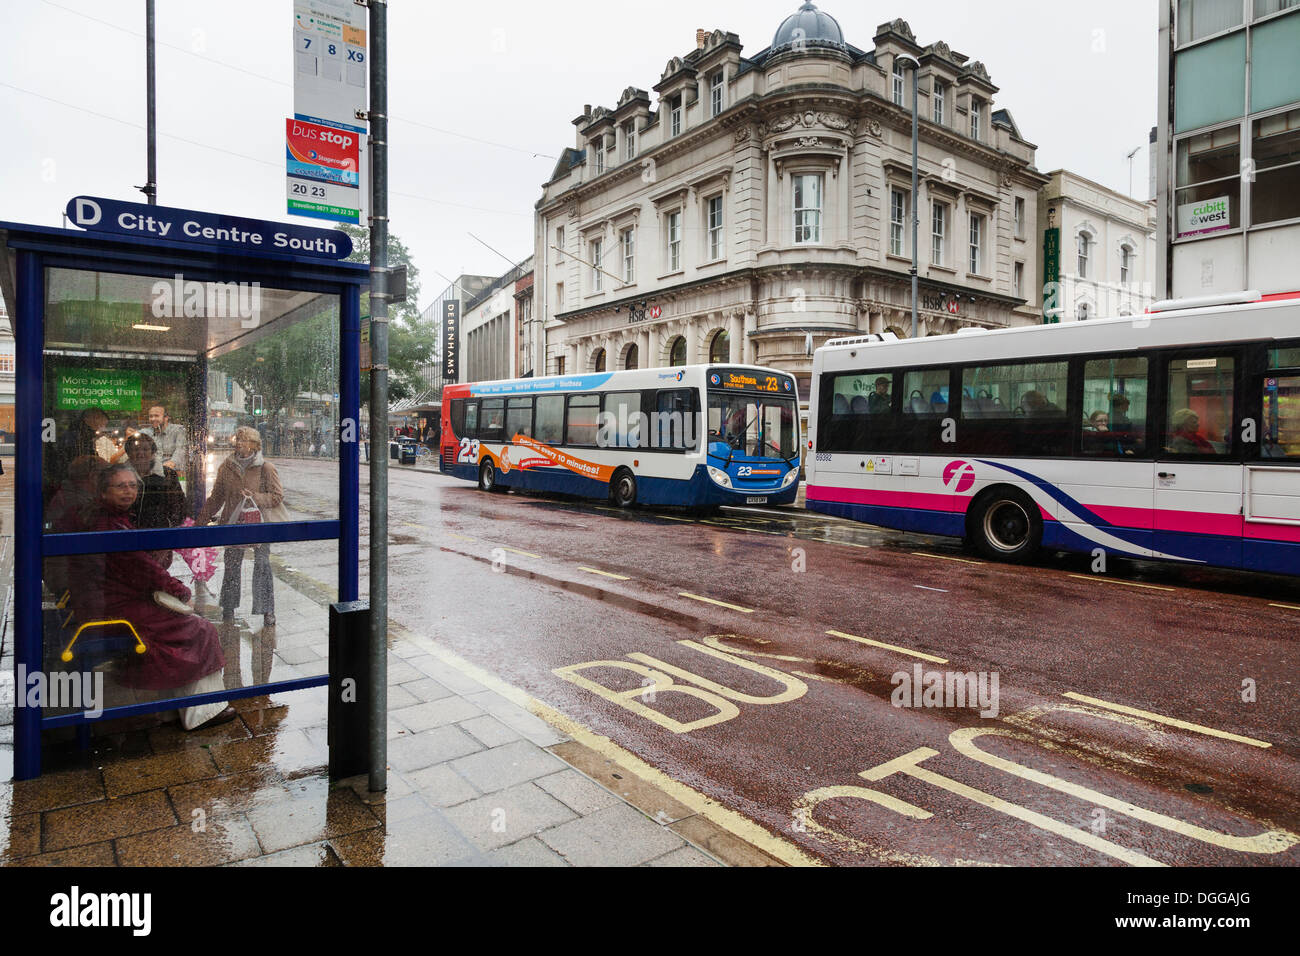 passengers waiting in town centre bus shelter with single decker buses - Stock Image